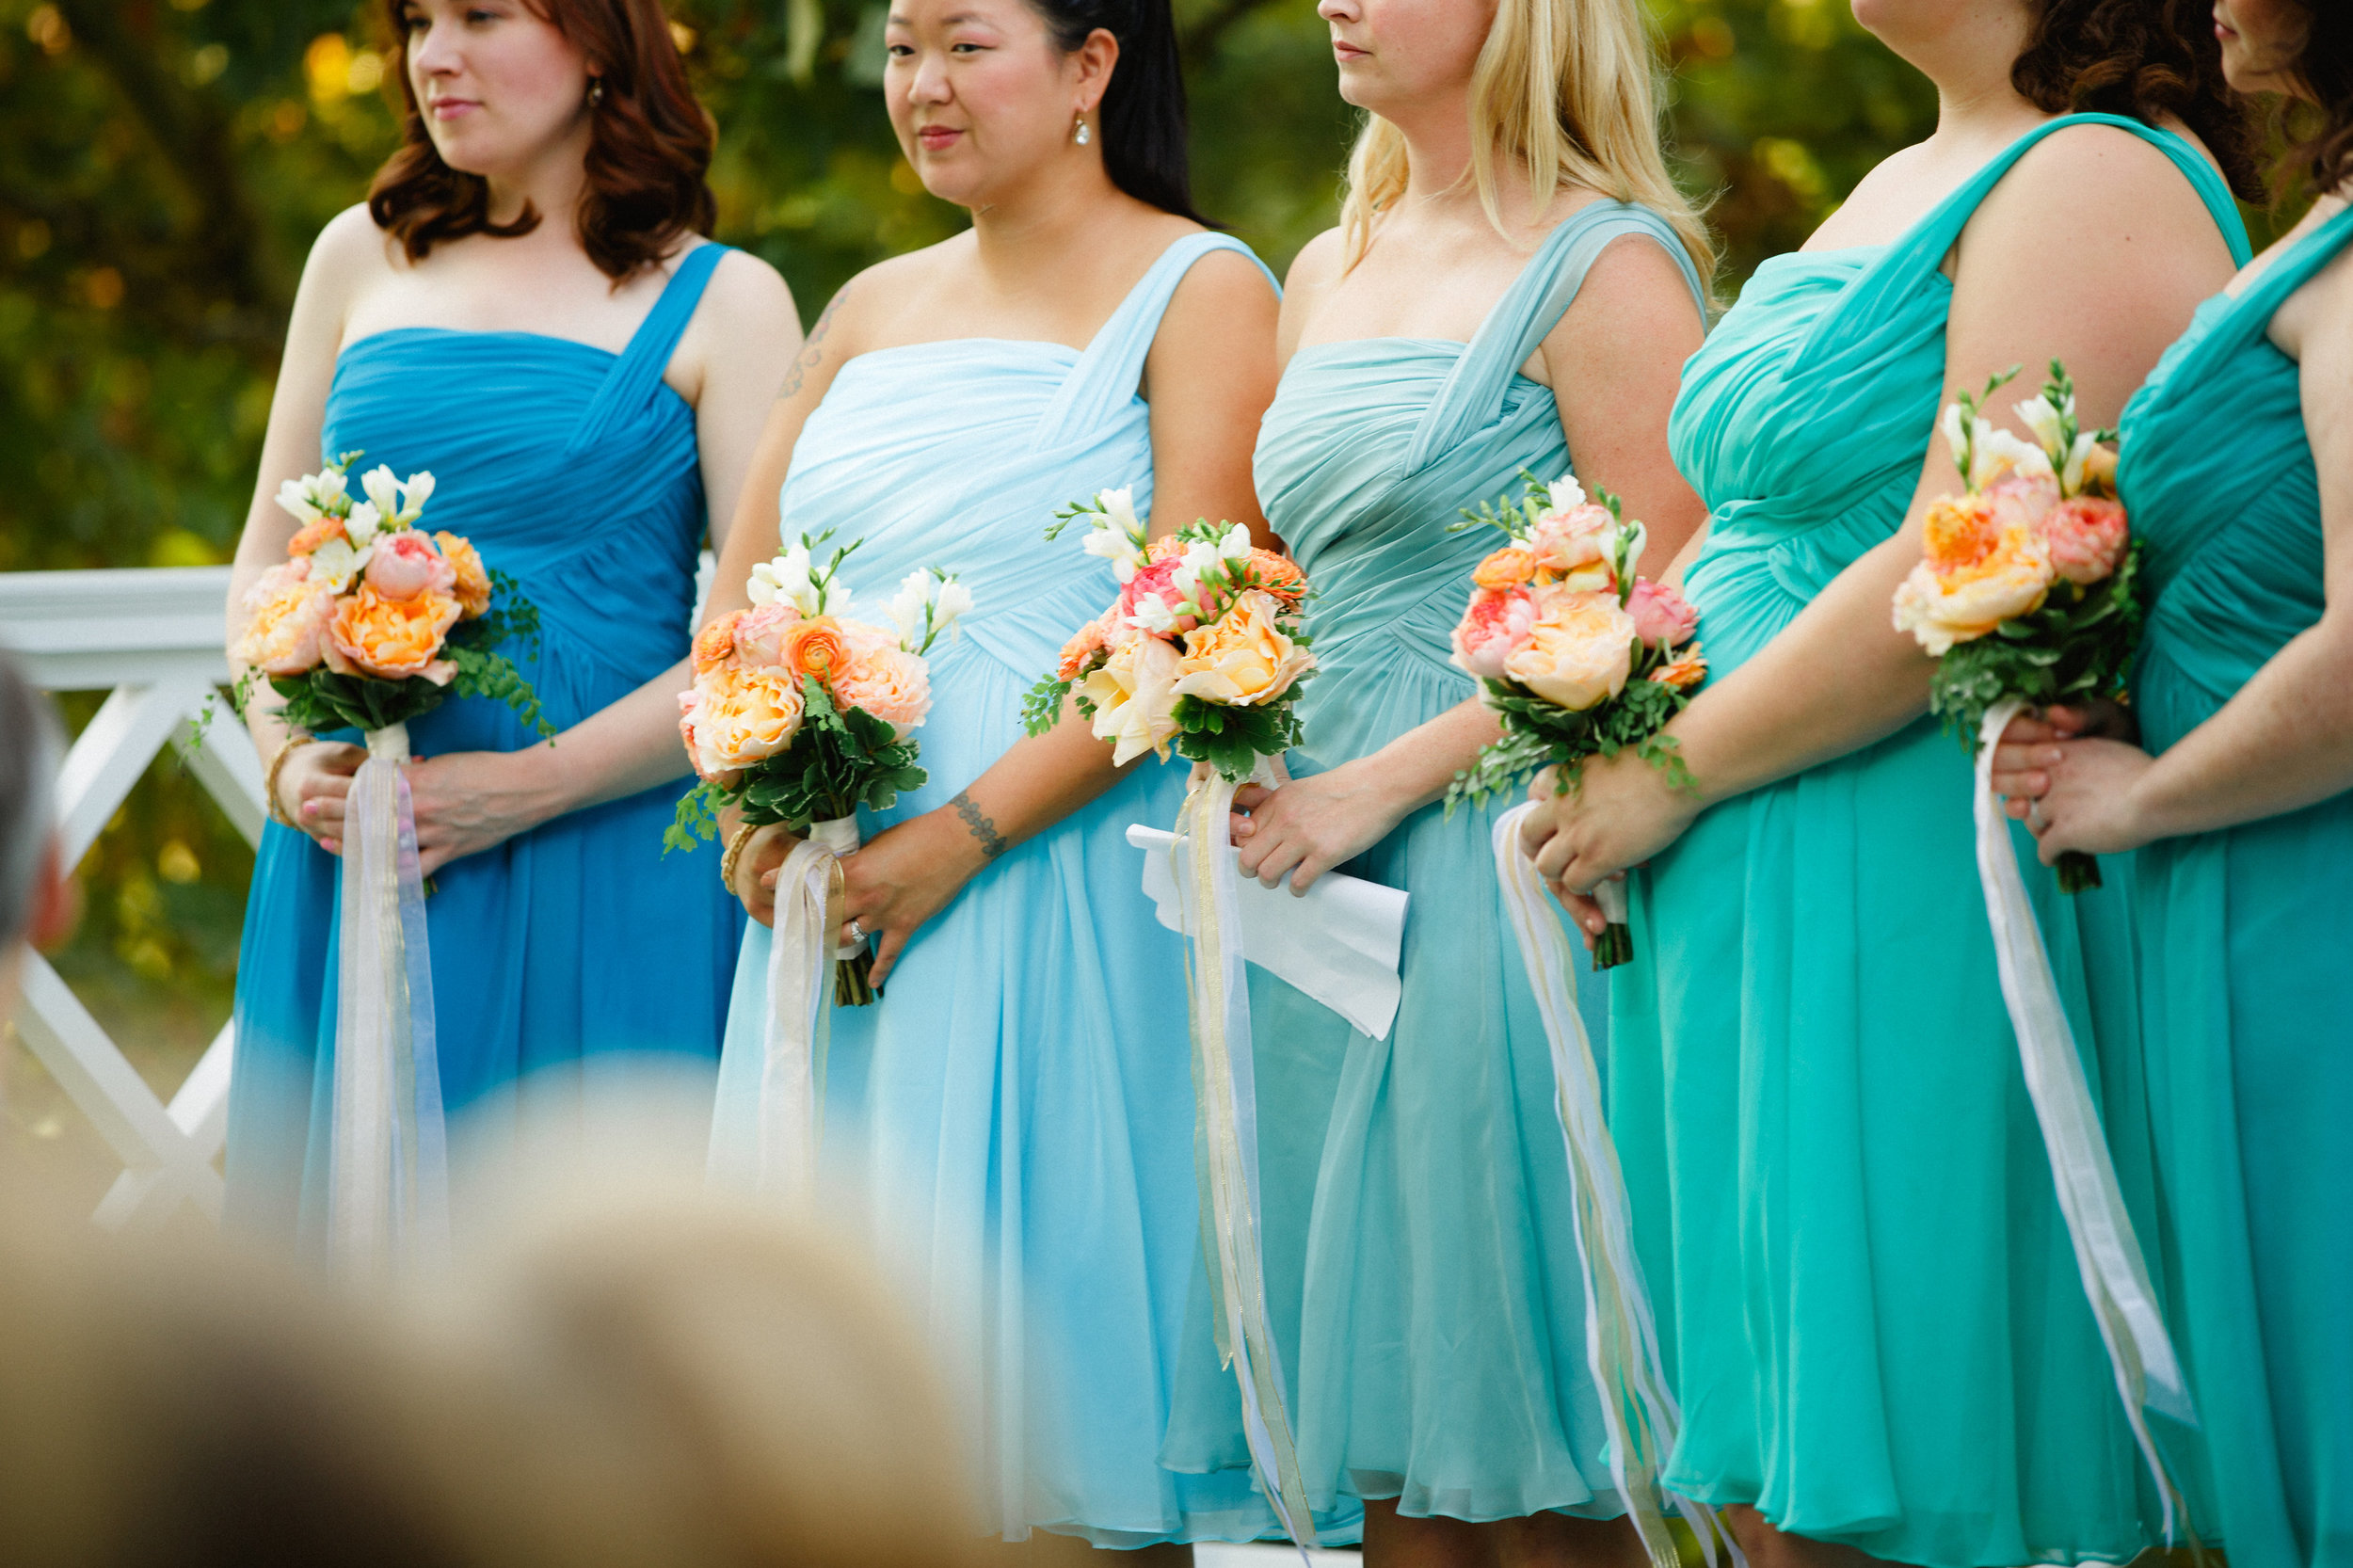 Vness-Photography-Chevy-Chase-Country-Club-A&R-Wedding-463.jpg